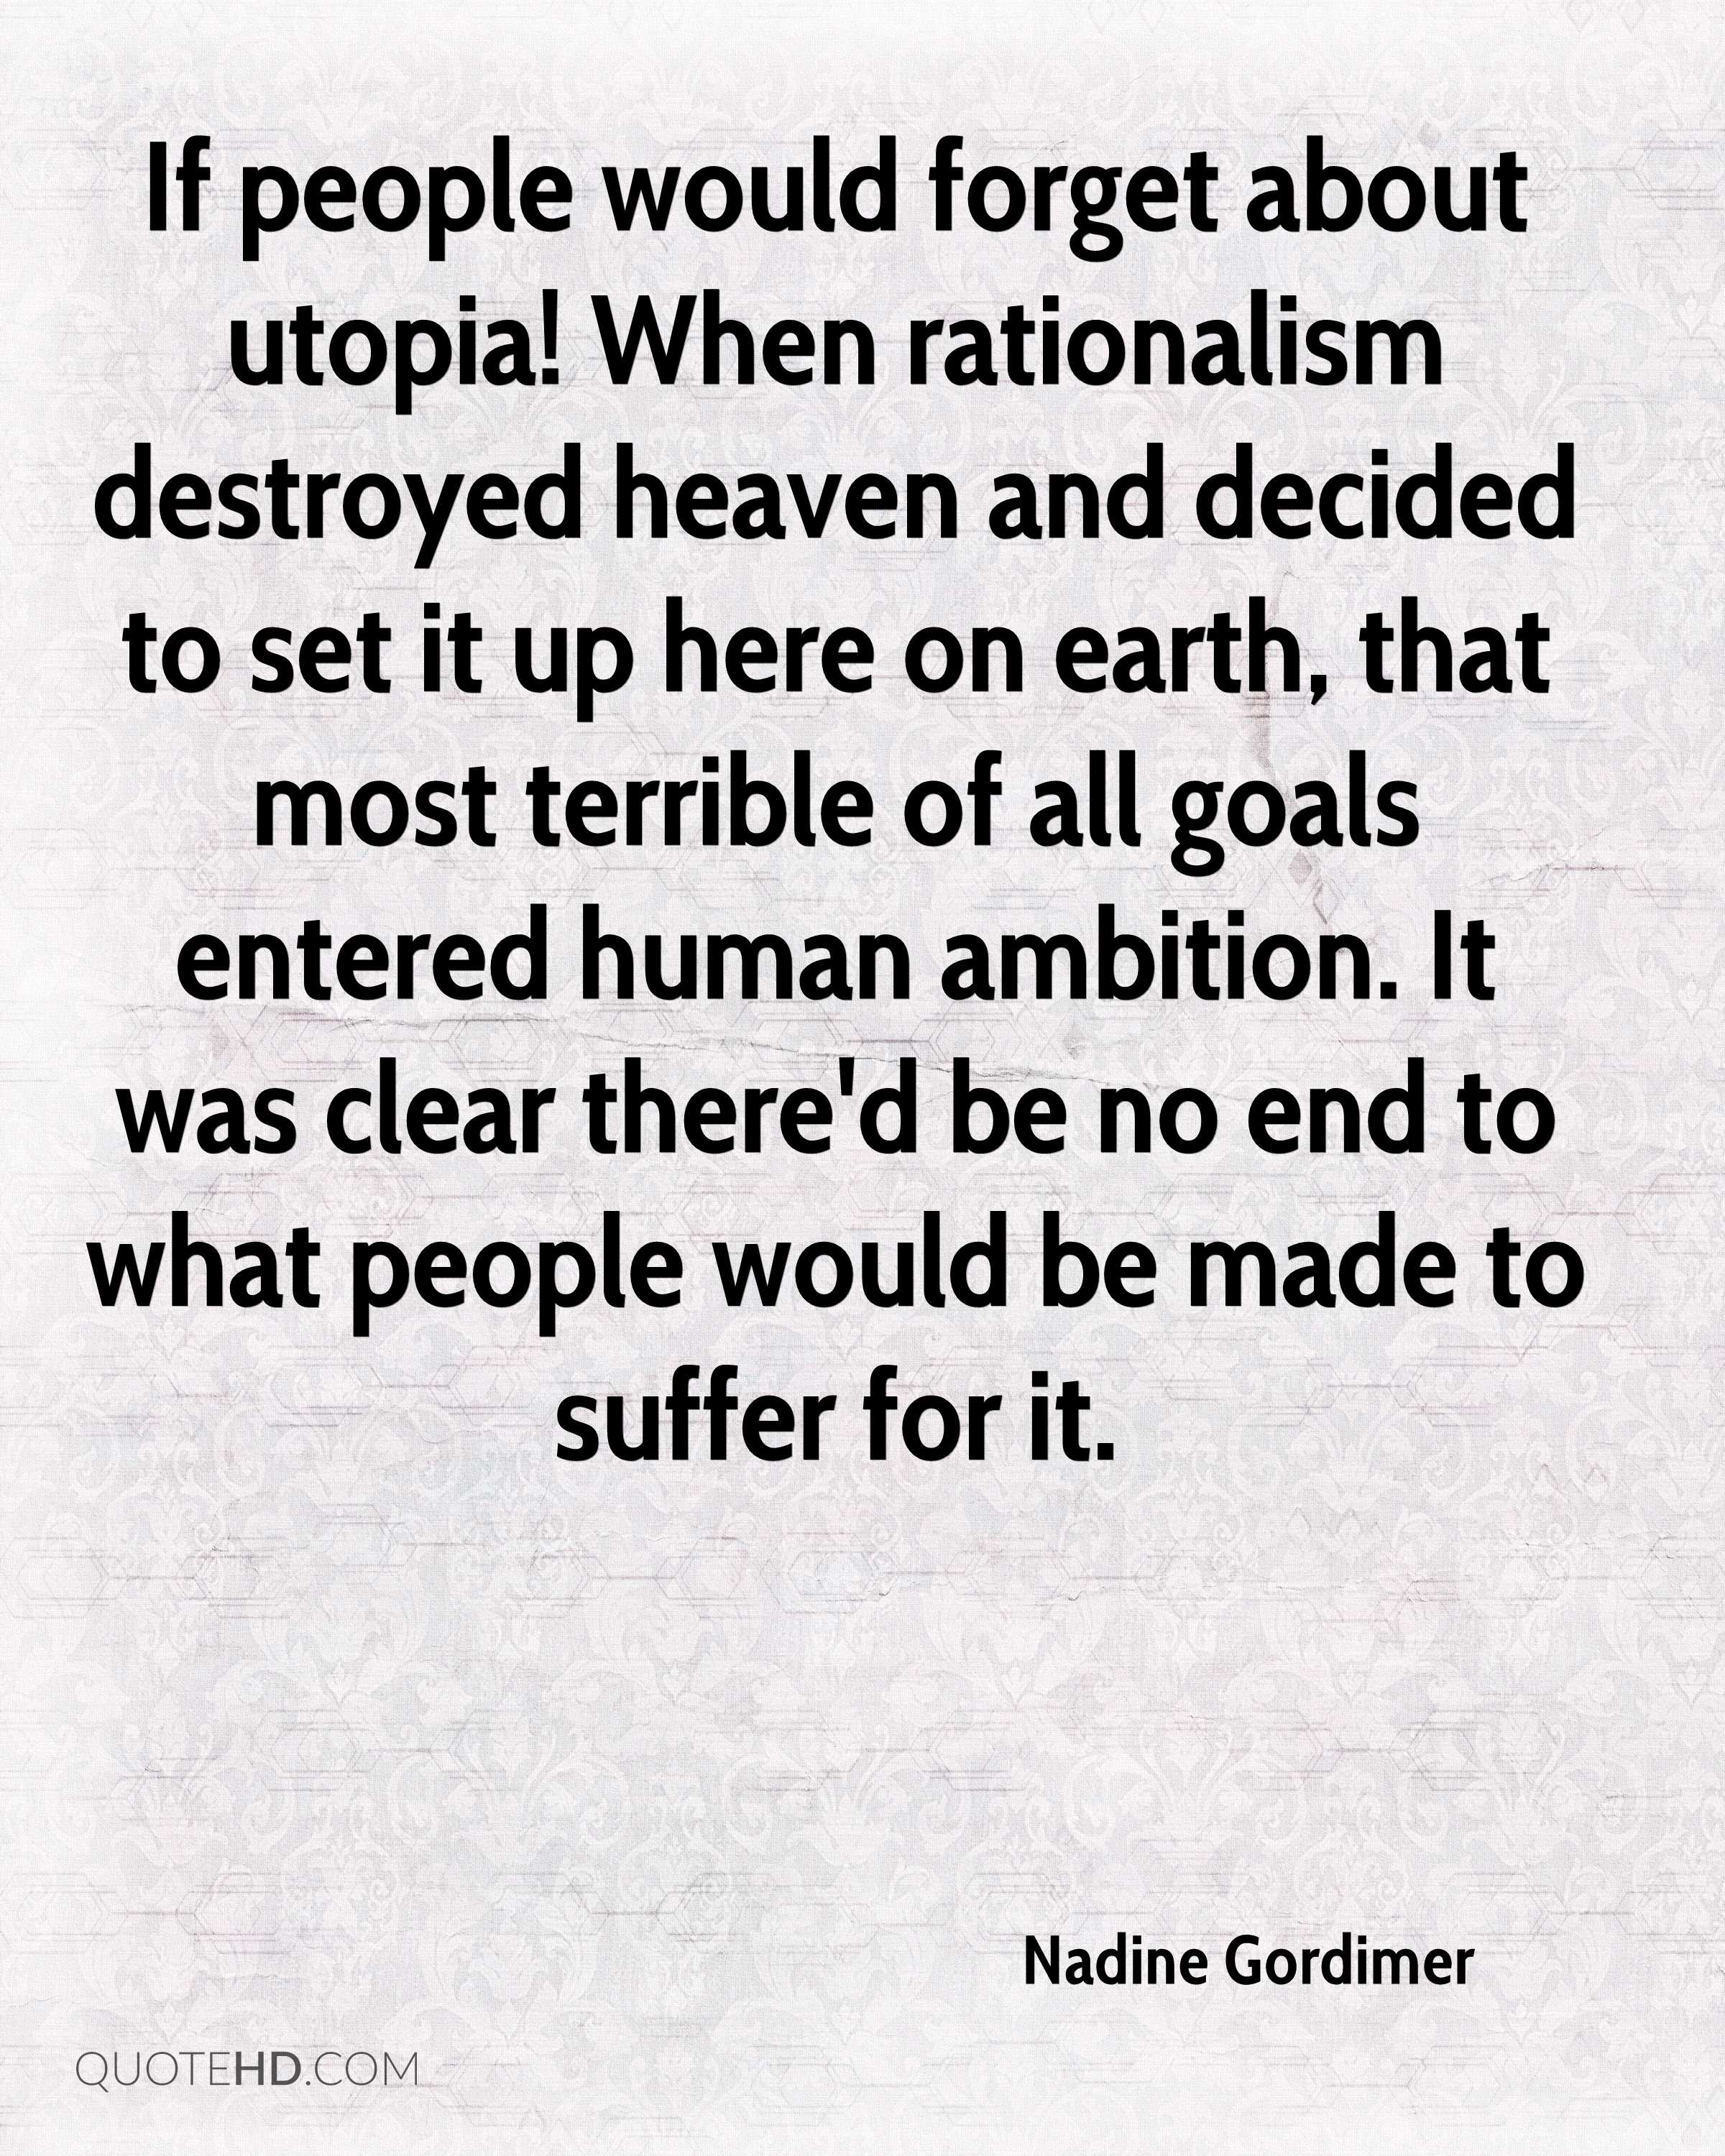 If people would forget about utopia! When rationalism destroyed heaven and decided to set it up here on earth, that most terrible of all goals entered human ambition. It was clear there'd be no end to what people would be made to suffer for it.